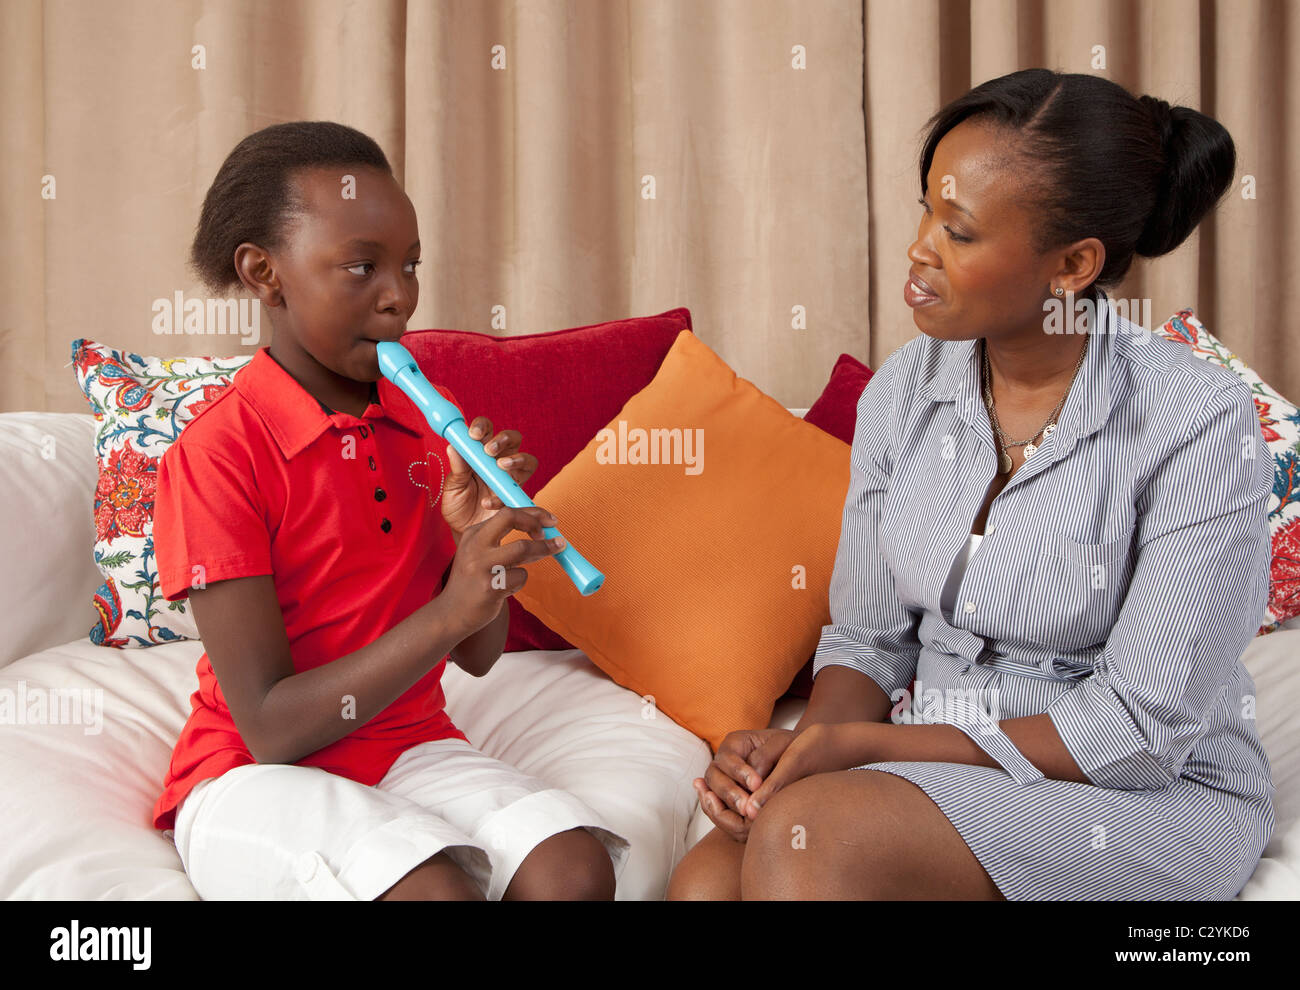 Mother listening to daughter playing recorder, Johannesburg, South Africa - Stock Image